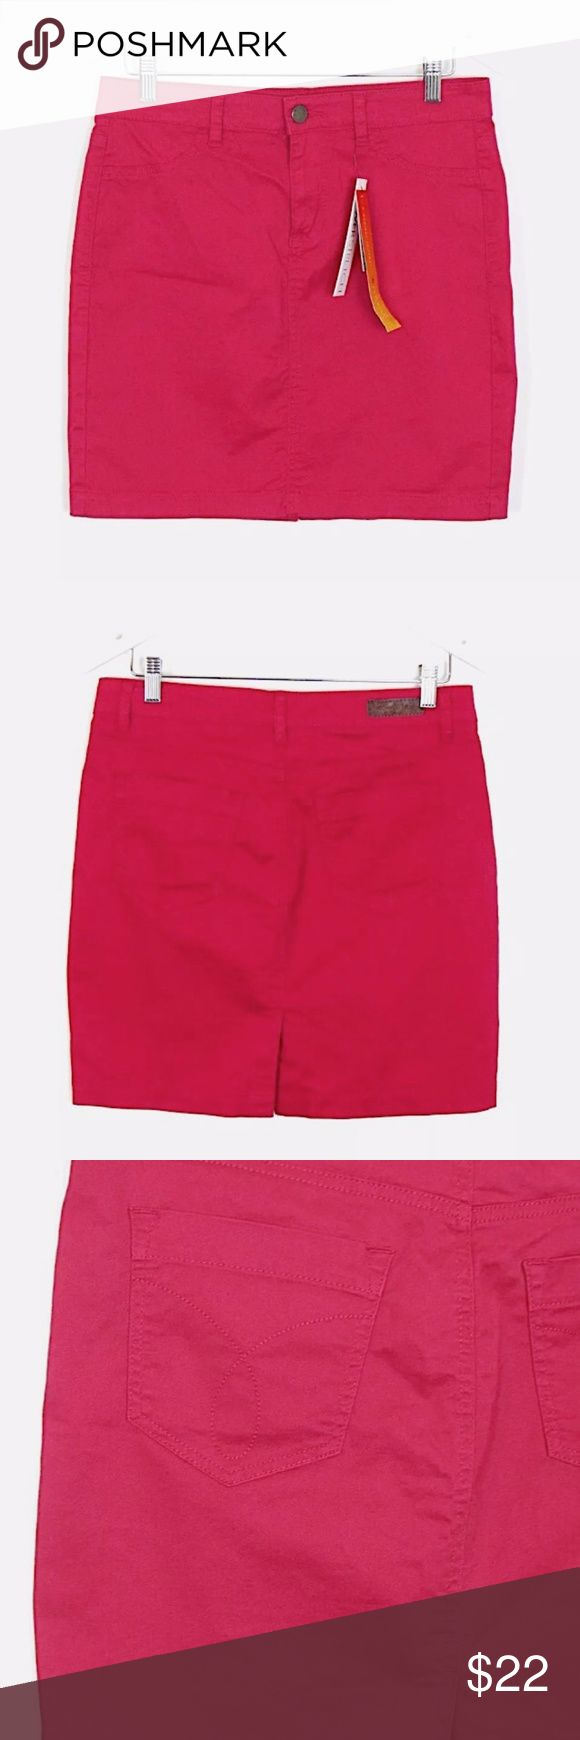 "Calvin Klein Jeans Power Stretch Mini Skirt 30/10 Brand:  Calvin Klein Jeans Style:  Power Stretch mini skirt, back pockets Size:  30/10 Color/Pattern: raspberry pink   Material:  97% cotton, 3% spandex Measurements taken flat:  -Waist: 16"" -Length: 18""  Garment Care:Machine wash, tumble dry Condition: New with tags. See pictures for details. Calvin Klein Jeans Skirts Mini"